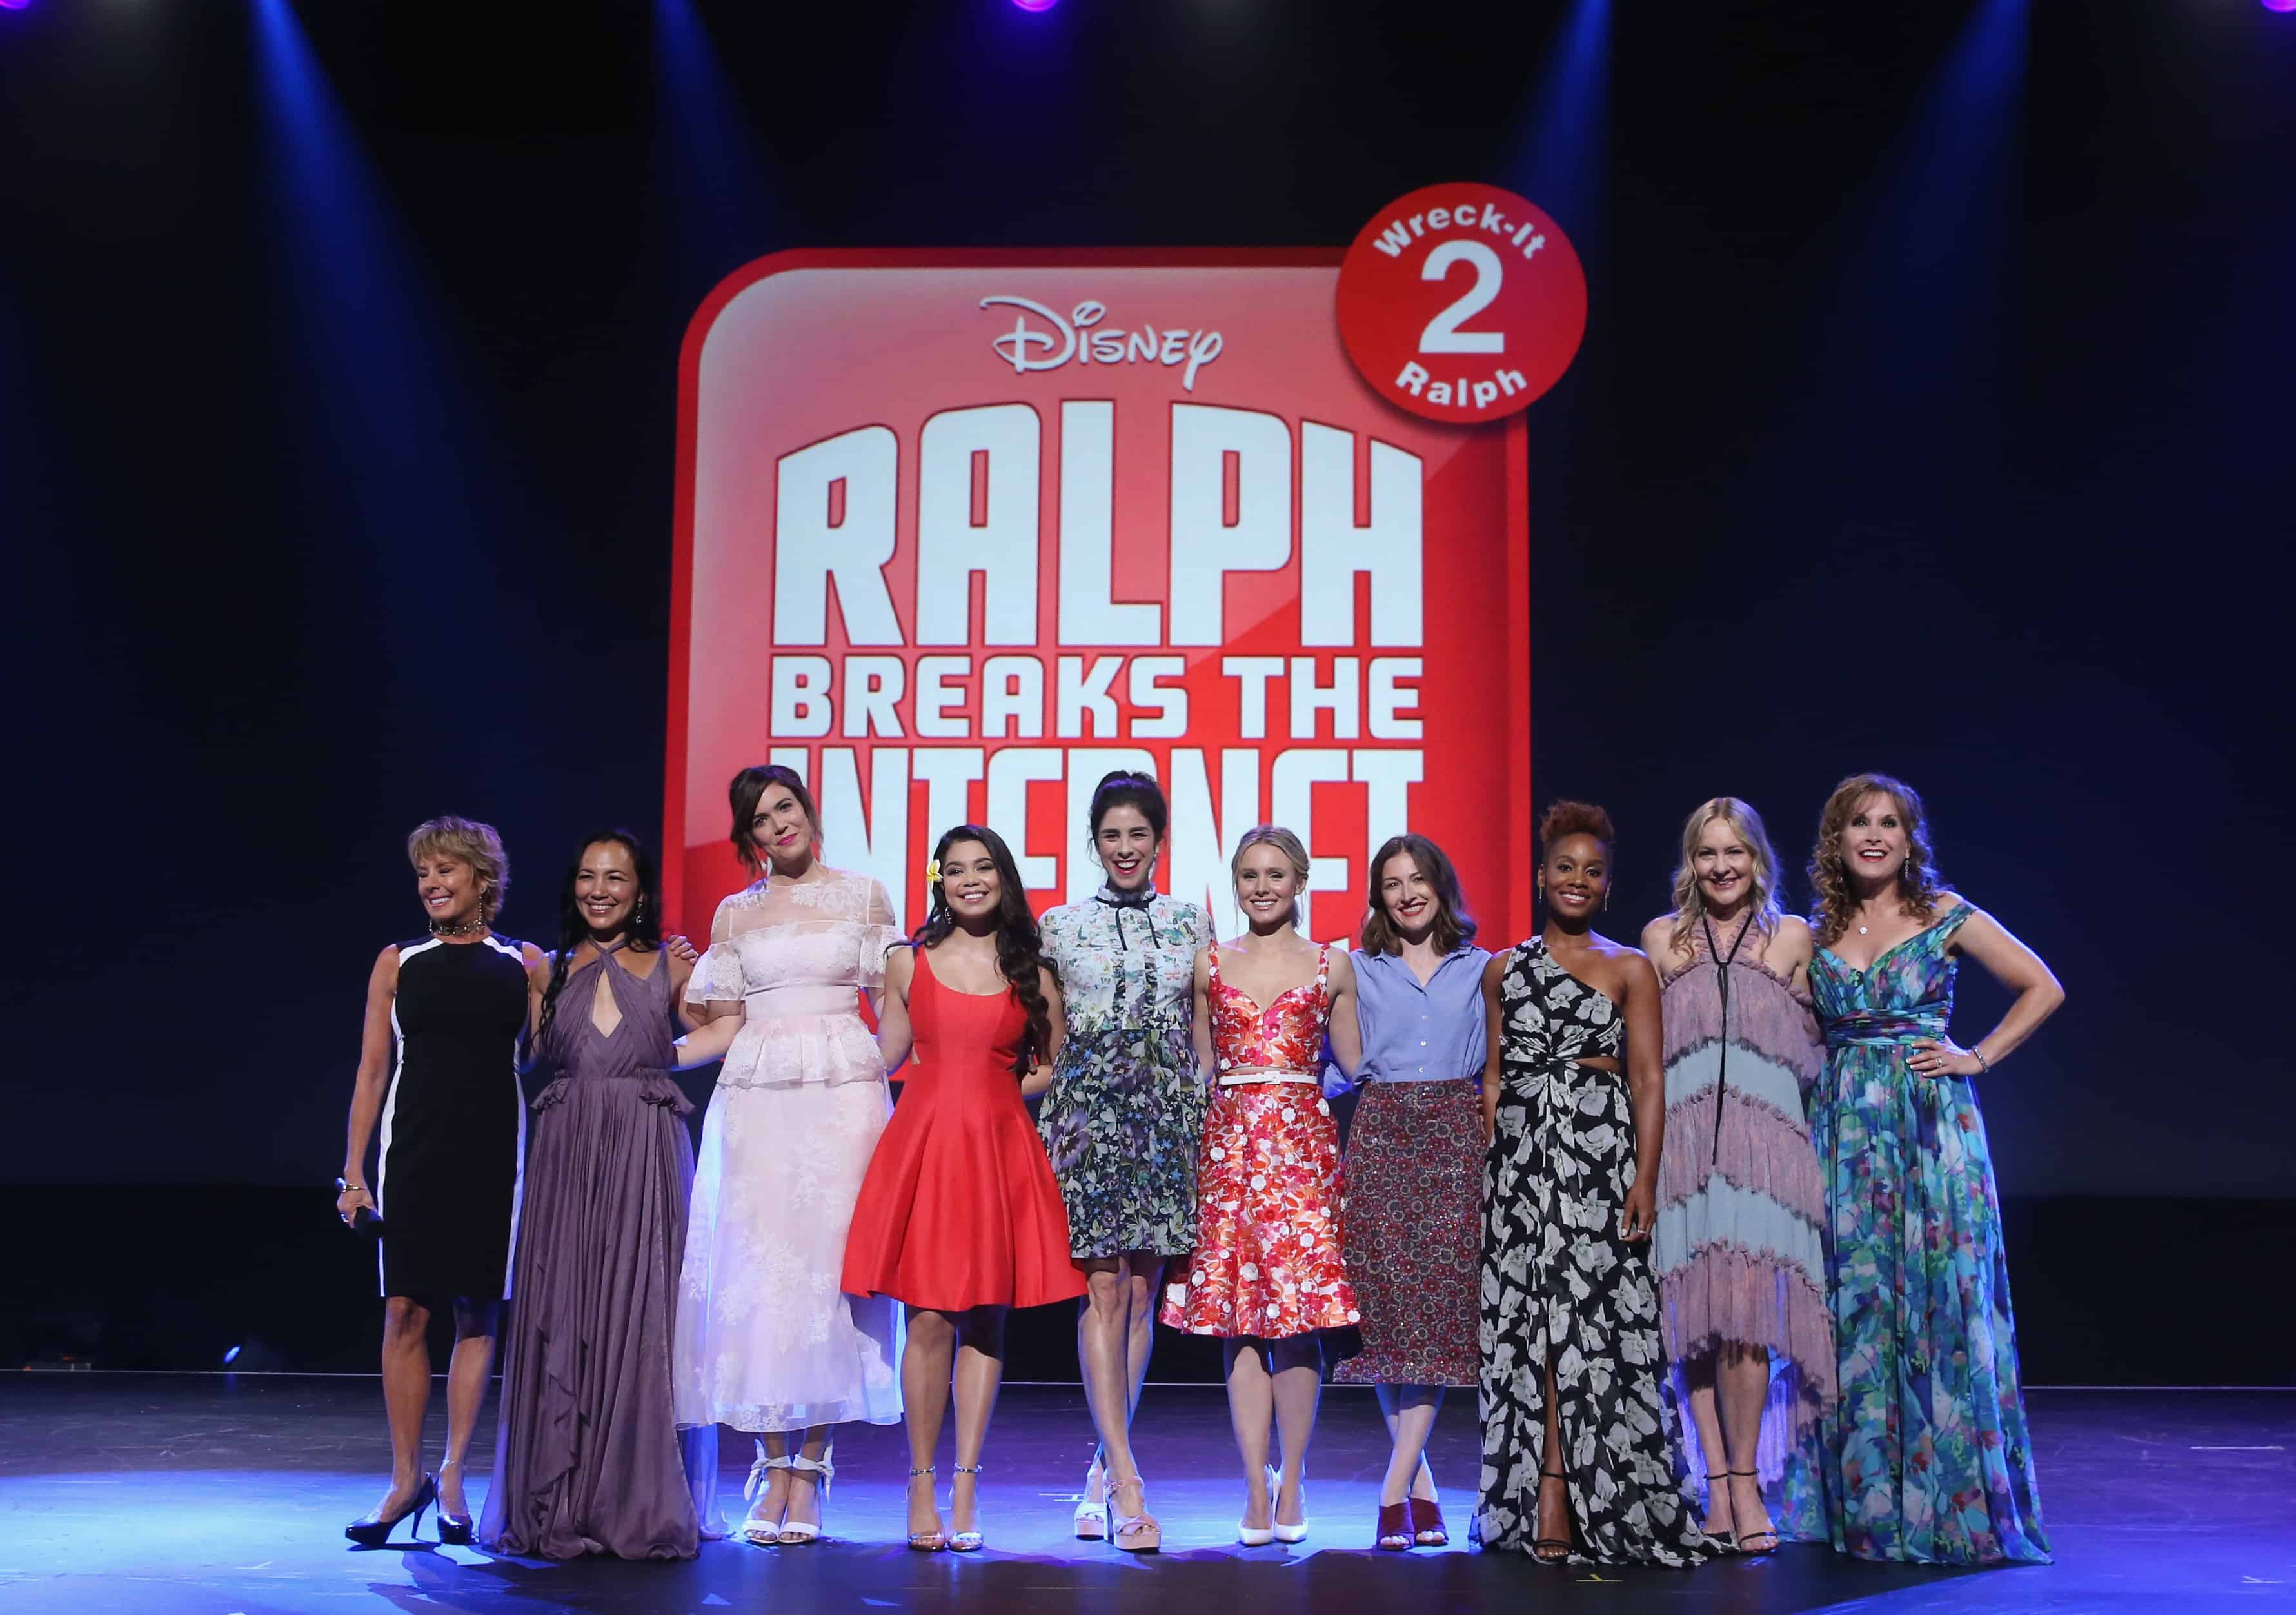 ANAHEIM, CA - JULY 14:  (L-R) Actors Paige O'Hara (Belle/BEAUTY AND THE BEAST), Irene Bedard (POCAHONTAS), Mandy Moore (Rapunzel/TANGLED), Auli'i Cravalho (MOANA), Sarah Silverman (Vanellope von Schweetz/RALPH BREAKS THE INTERNET: WRECK-IT RALPH 2), Kristen Bell (Anna/FROZEN), Kelly Macdonald (Merida/BRAVE), Anika Noni Rose (Tiana/THE PRINCESS AND THE FROG), Linda Larkin (Jasmine/ALADDIN), and Jodi Benson (Ariel/THE LITTLE MERMAID) of RALPH BREAKS THE INTERNET: WRECK-IT RALPH 2 took part today in the Walt Disney Studios animation presentation at Disney's D23 EXPO 2017 in Anaheim, Calif. RALPH BREAKS THE INTERNET: WRECK-IT RALPH 2 will be released in U.S. theaters on November 21, 2018(Photo by Jesse Grant/Getty Images for Disney) *** Local Caption *** Paige O'Hara; Irene Bedard; Mandy Moore; Auli'i Cravalho; Sarah Silverman; Kristen Bell; Kelly Macdonald; Anika Noni Rose; Linda Larkin; Jodi Benson